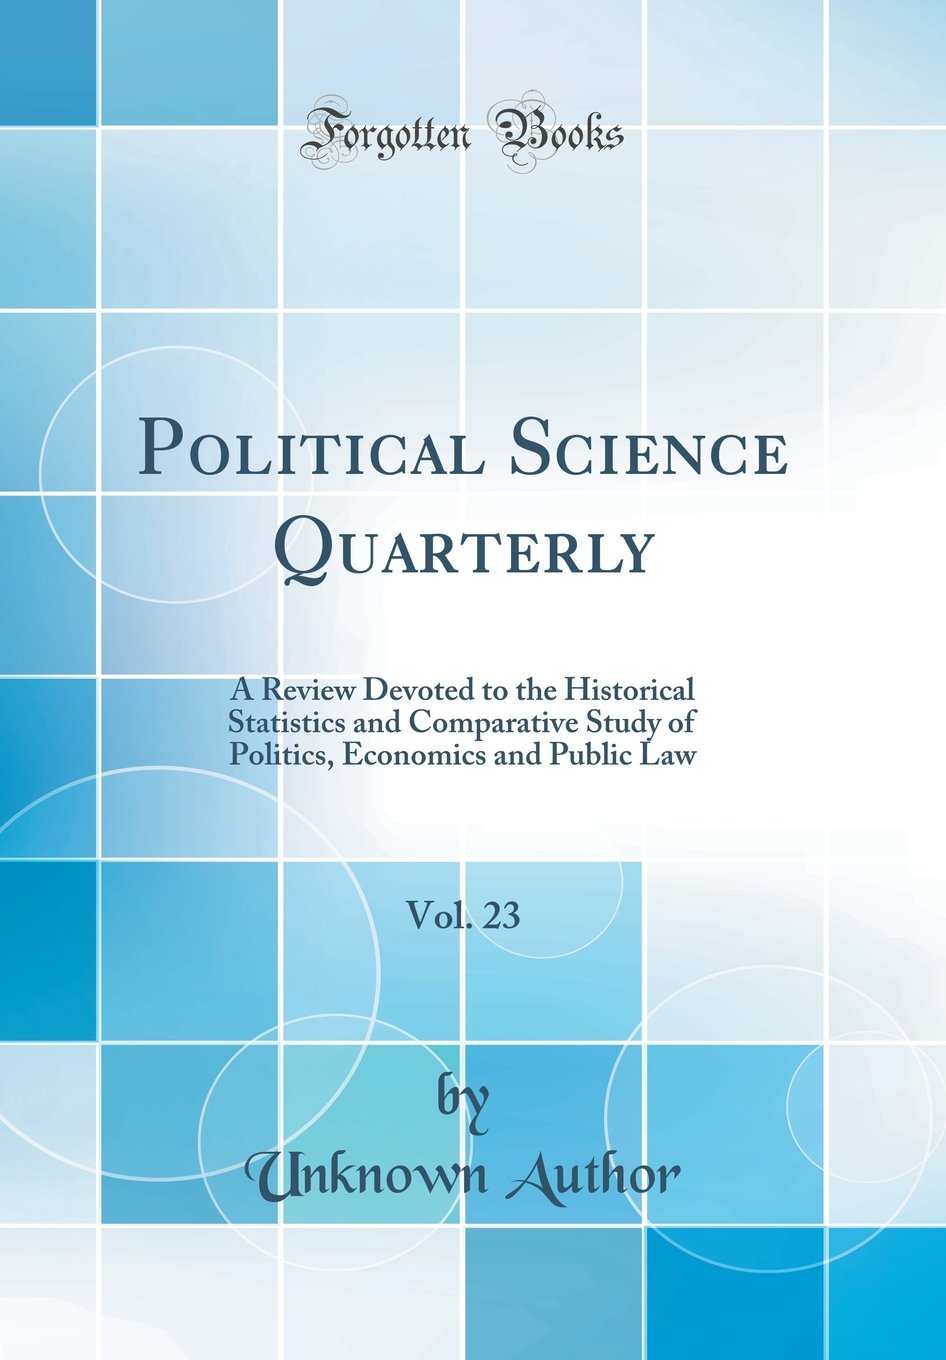 Download Political Science Quarterly, Vol. 23: A Review Devoted to the Historical Statistics and Comparative Study of Politics, Economics and Public Law (Classic Reprint) ebook